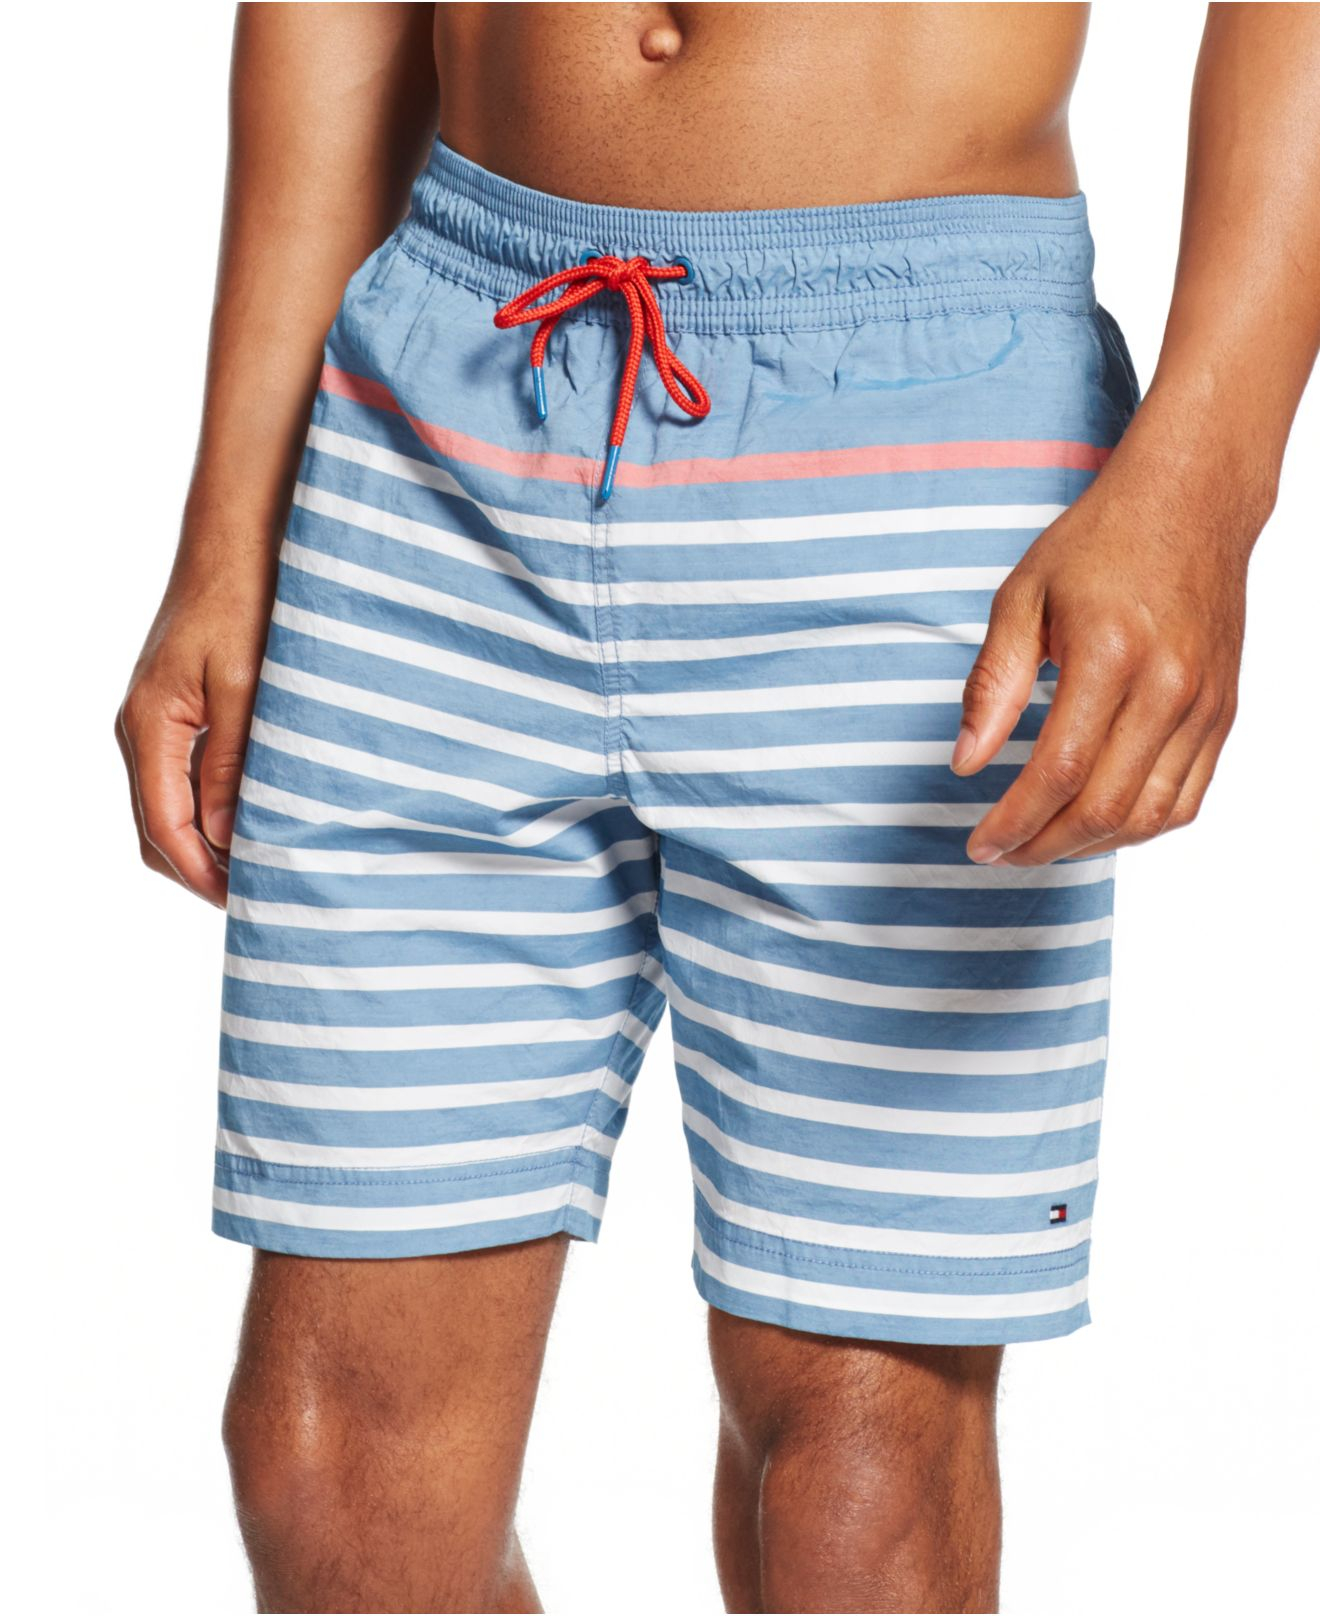 ce08356a3777e Tommy Hilfiger Striped Swim Trunks in Blue for Men - Lyst